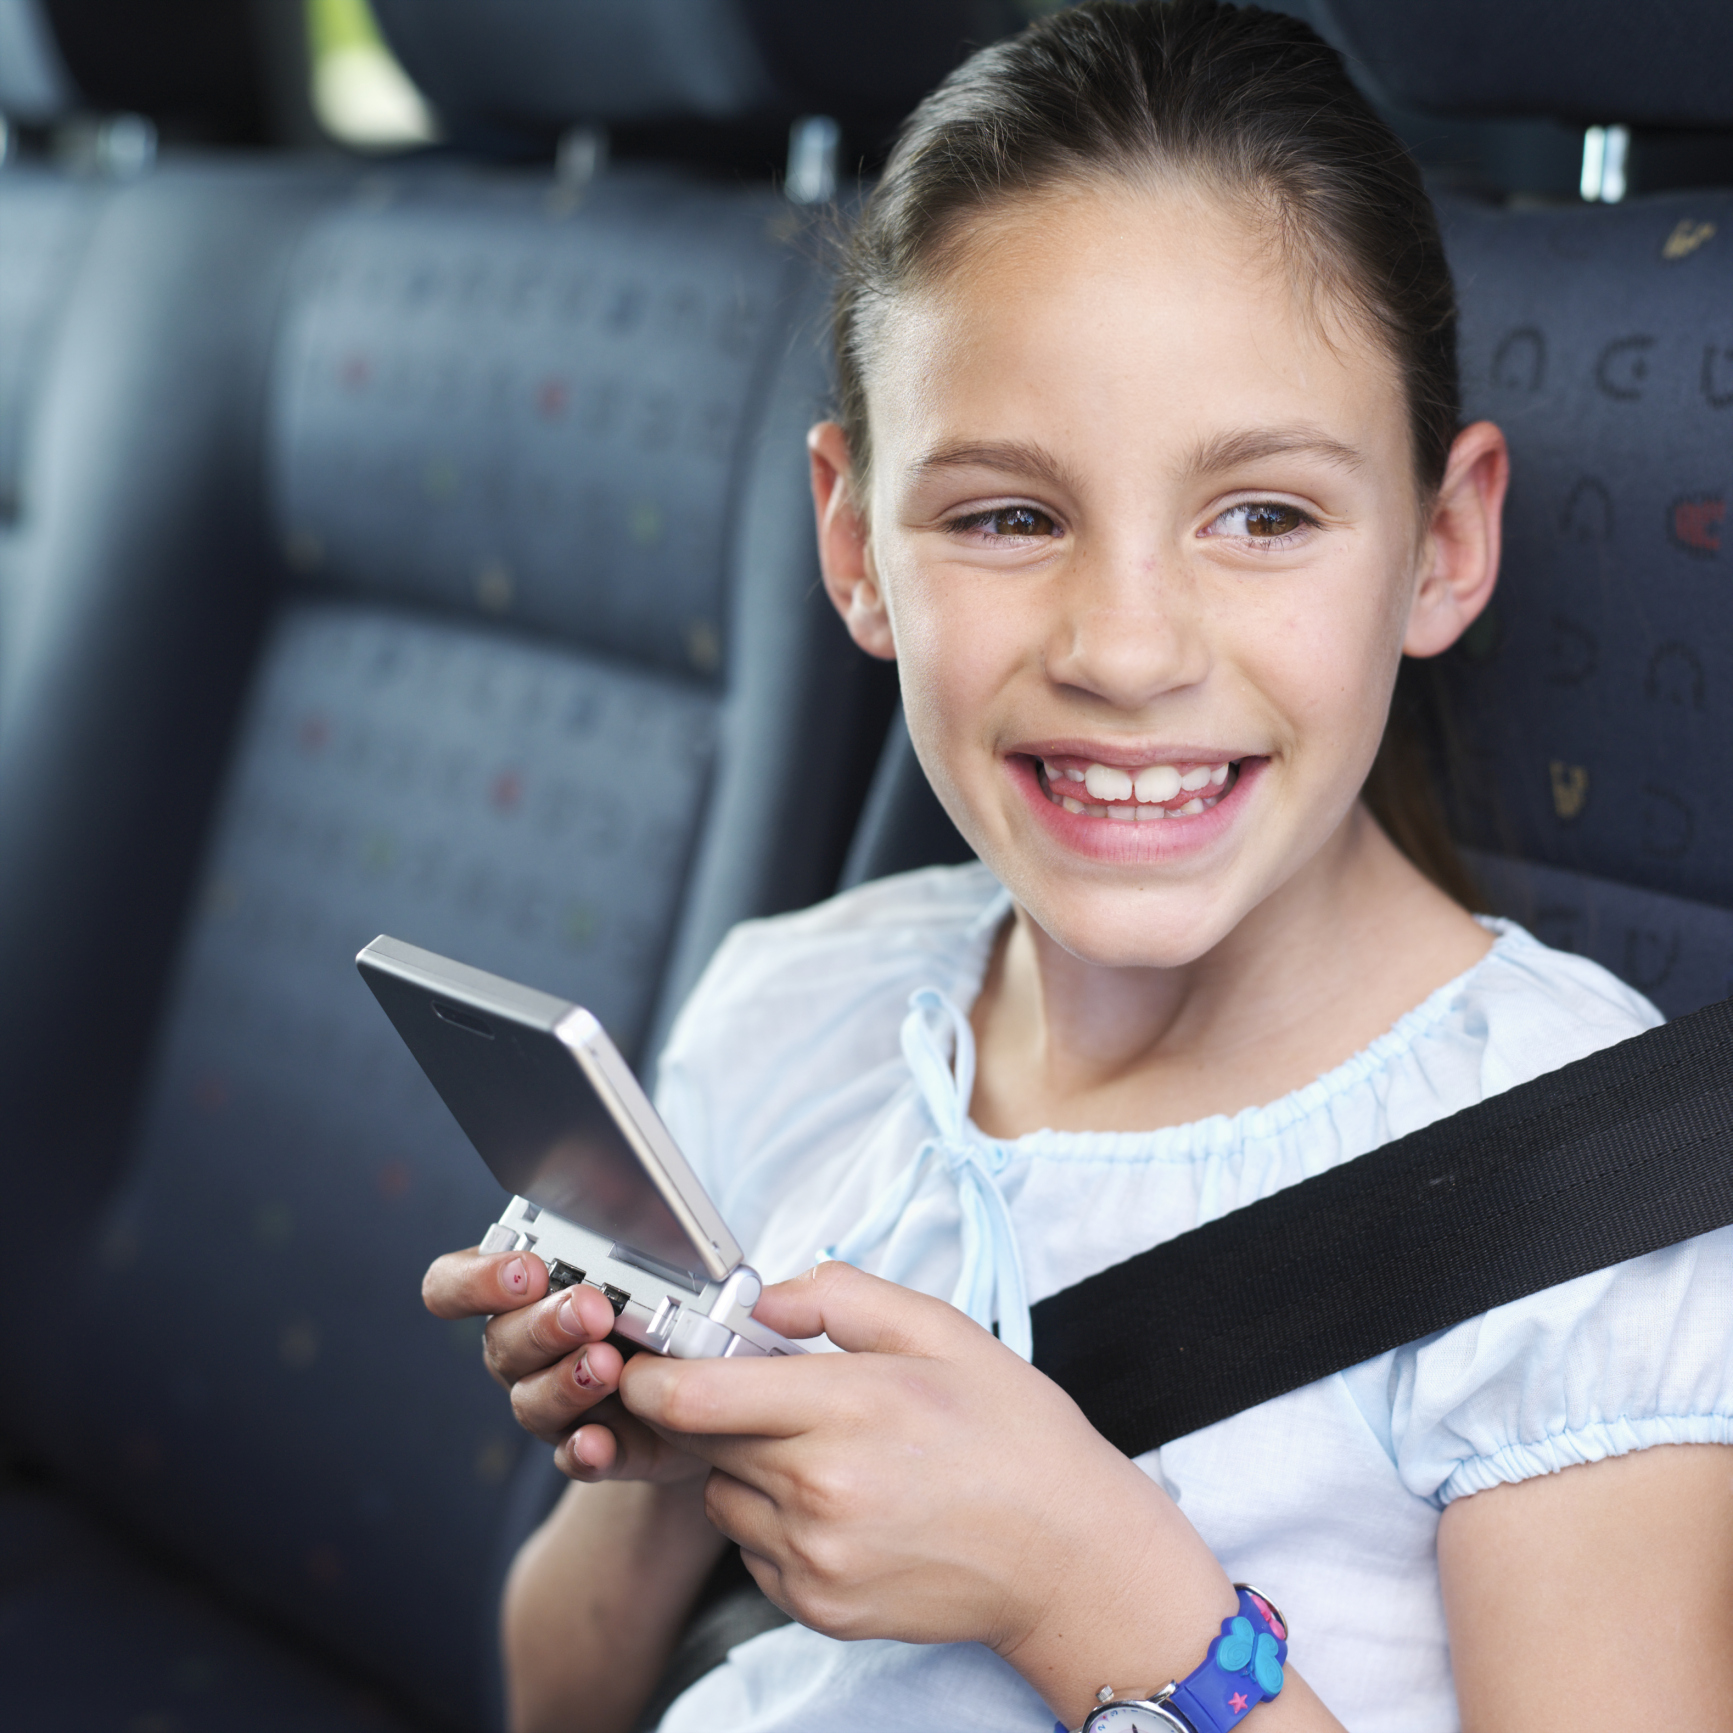 Dch Audi Oxnard Dch Audi Oxnard Why Young Children Should Not Ride In The Front Seat